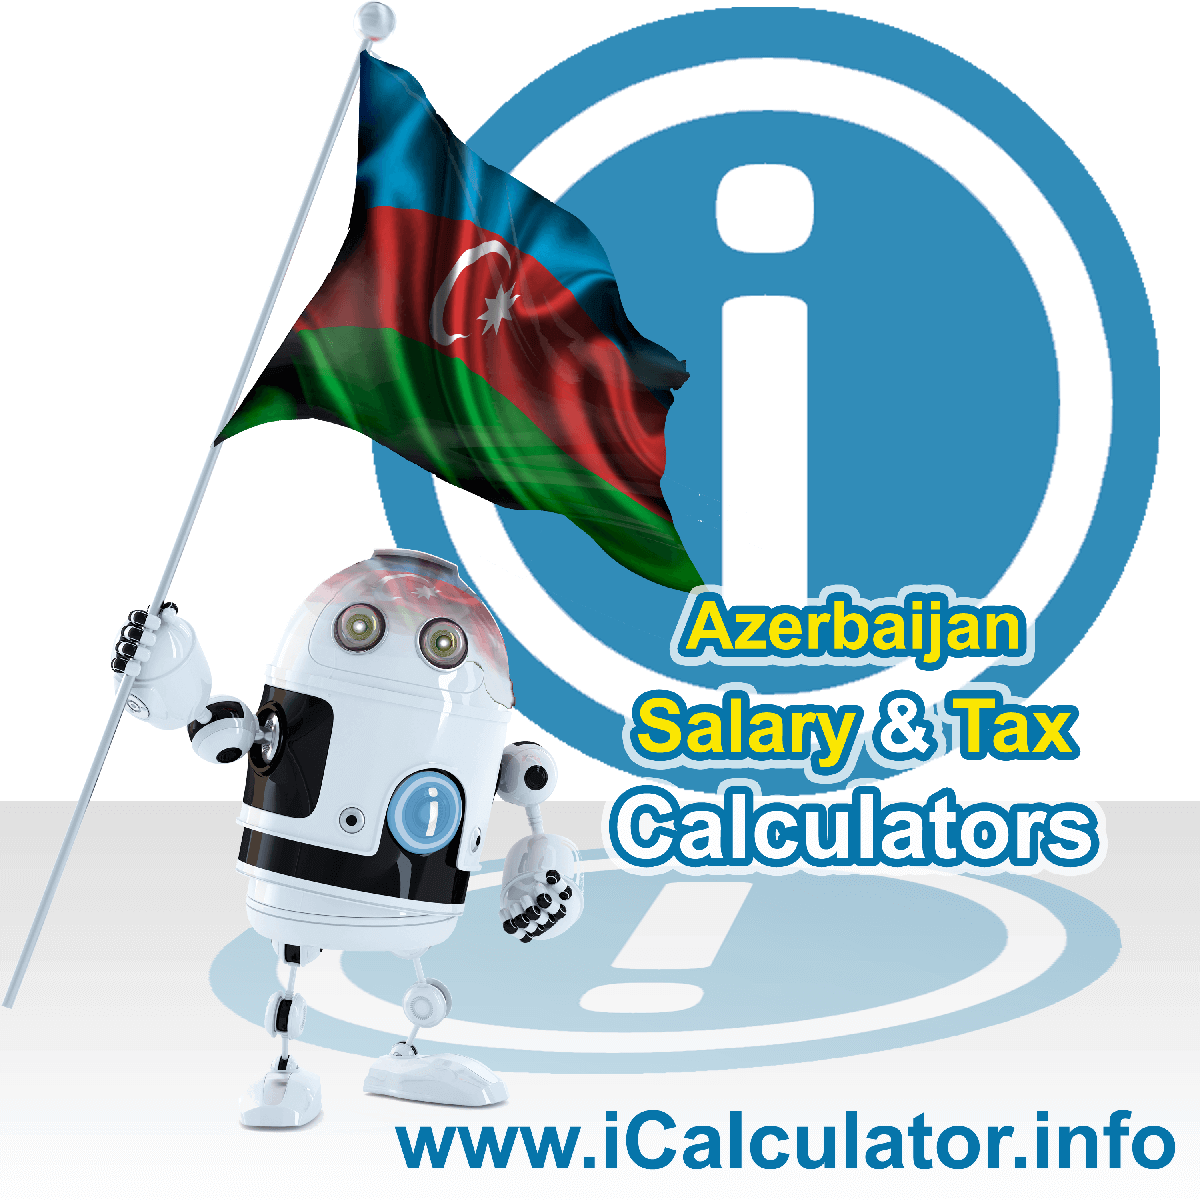 Azerbaijan Wage Calculator. This image shows the Azerbaijan flag and information relating to the tax formula for the Azerbaijan Tax Calculator